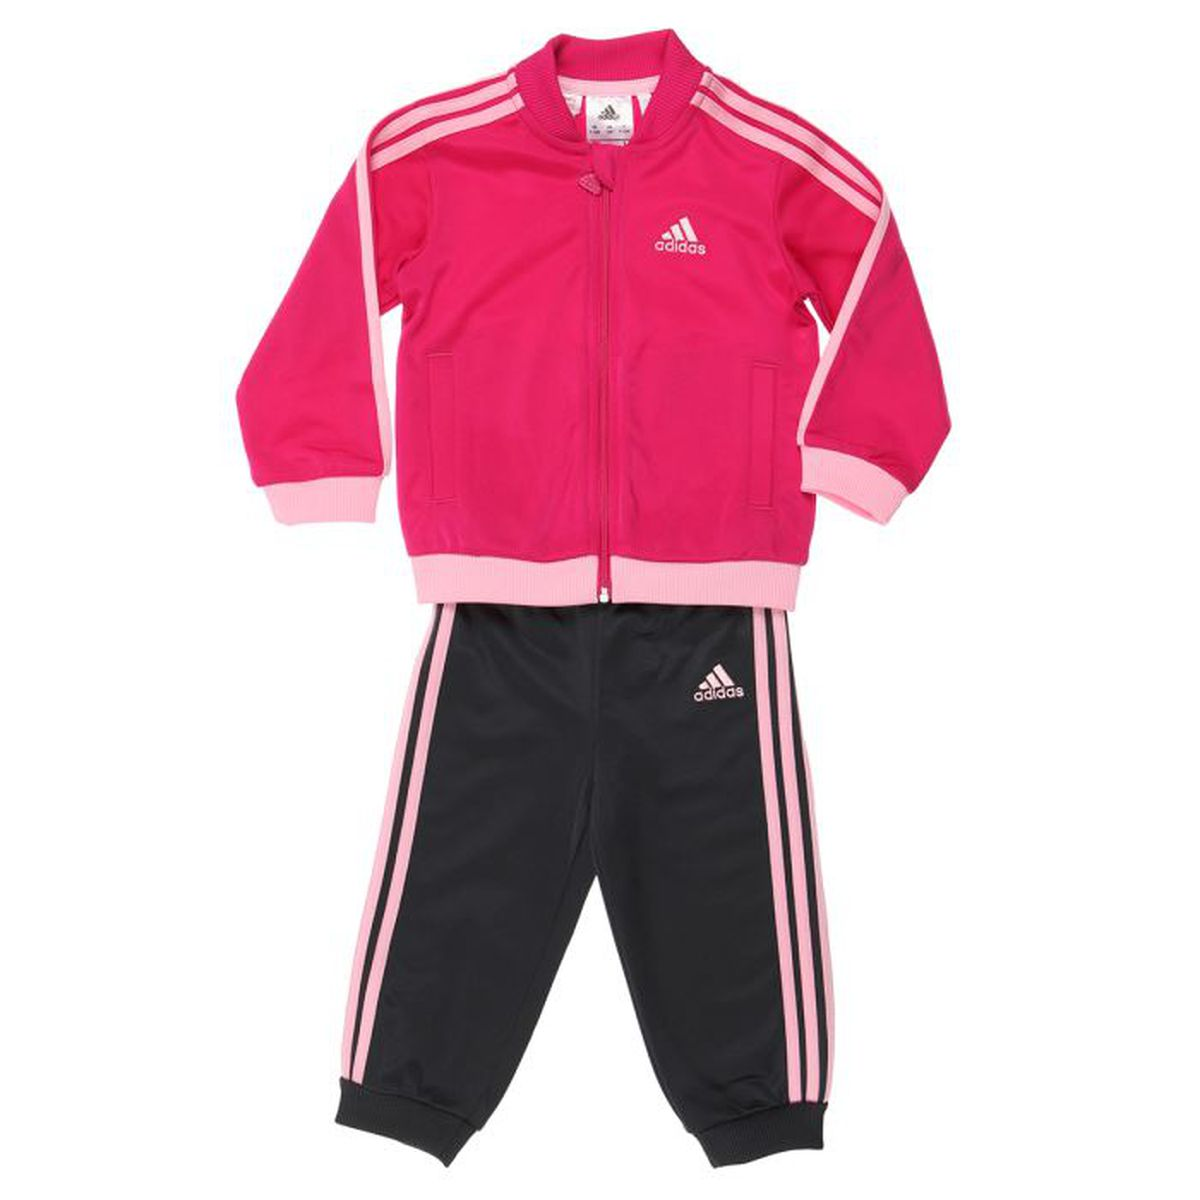 le sport vetements de adidas survetement bebe fille f  m